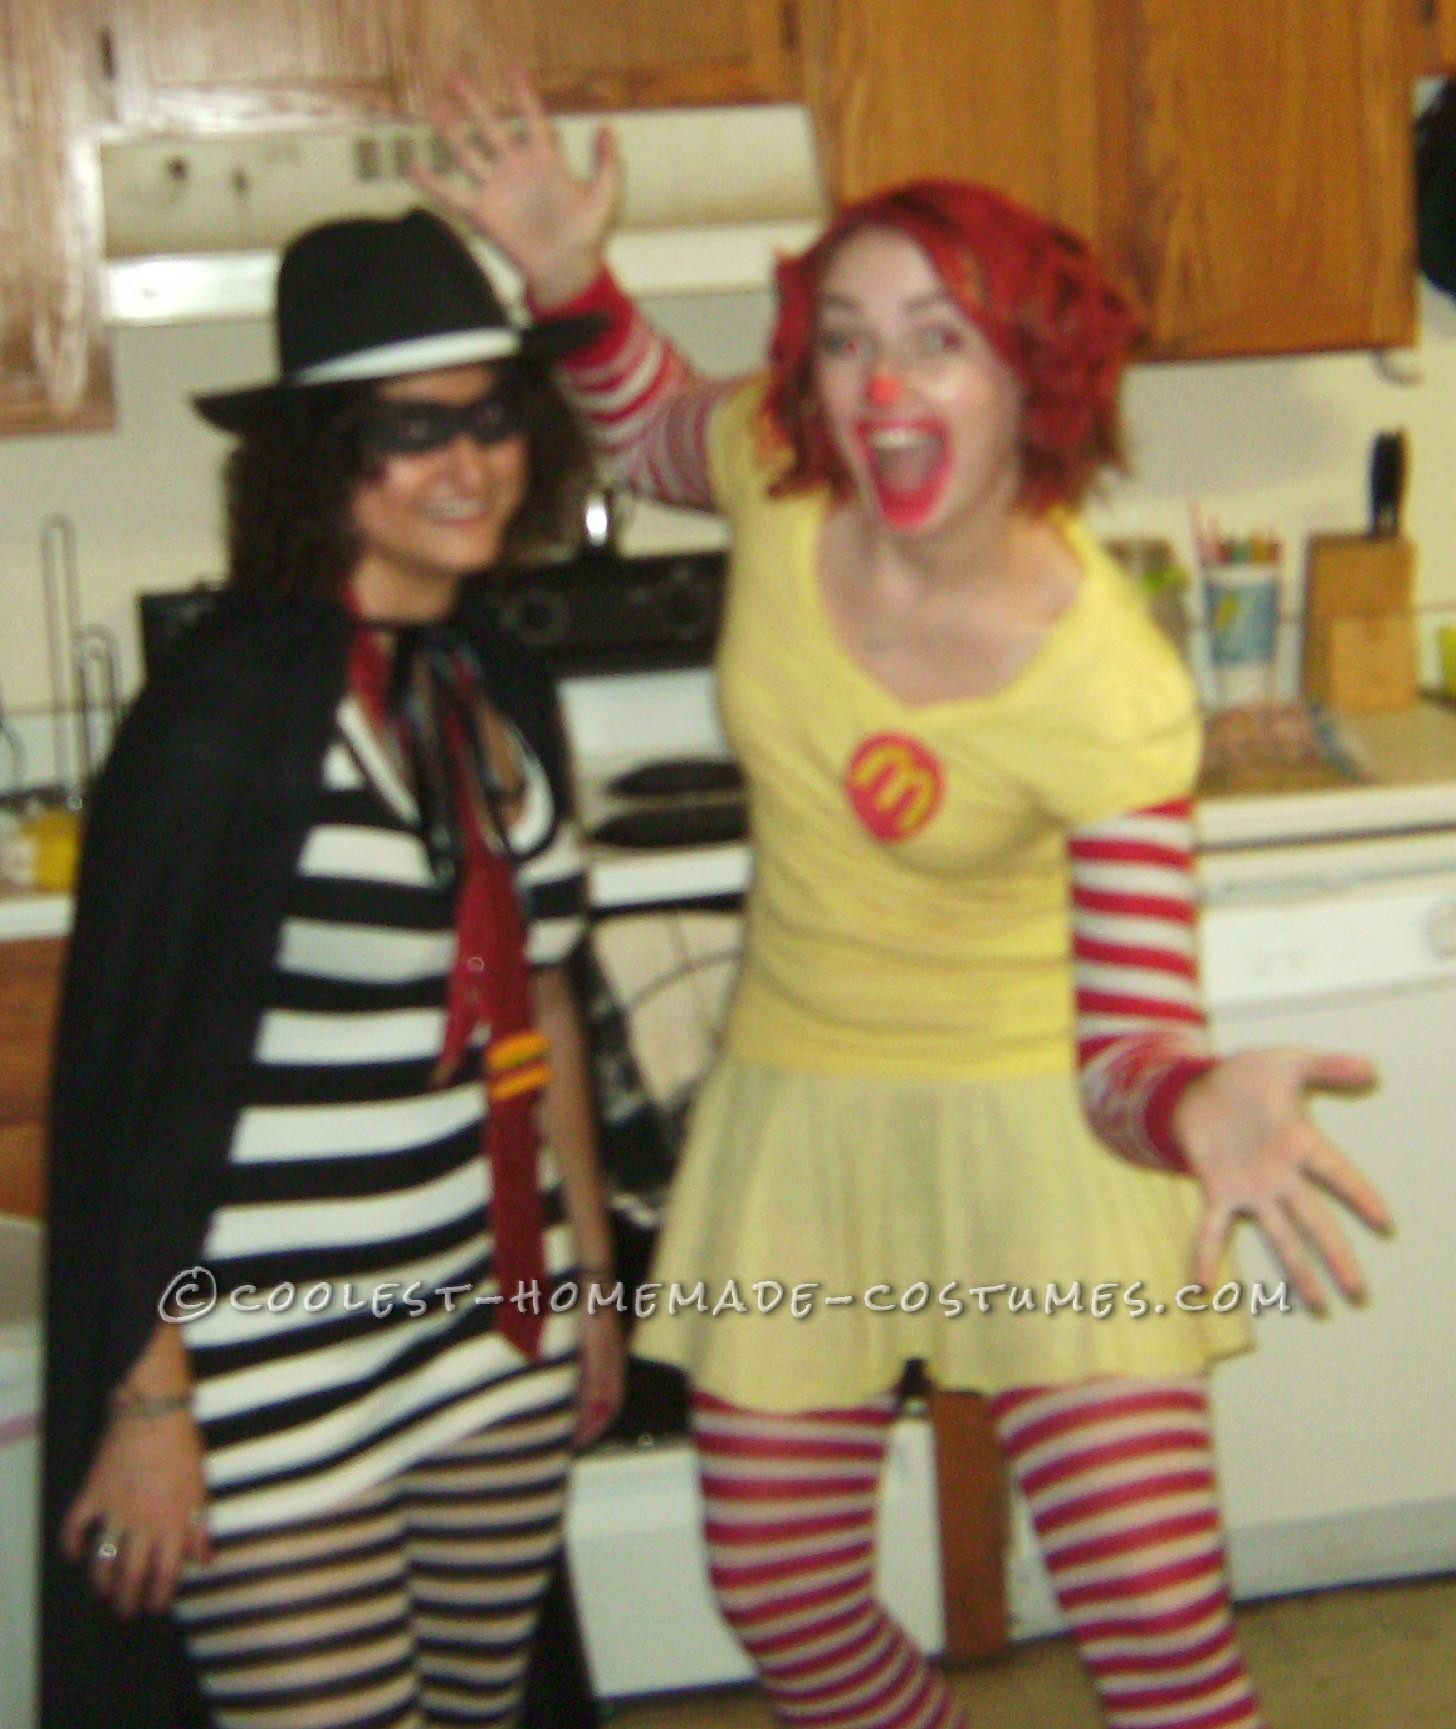 my friend hilary ronald and i the hamburglar were brainstorming on halloween costume ideas one year for a group of four of us